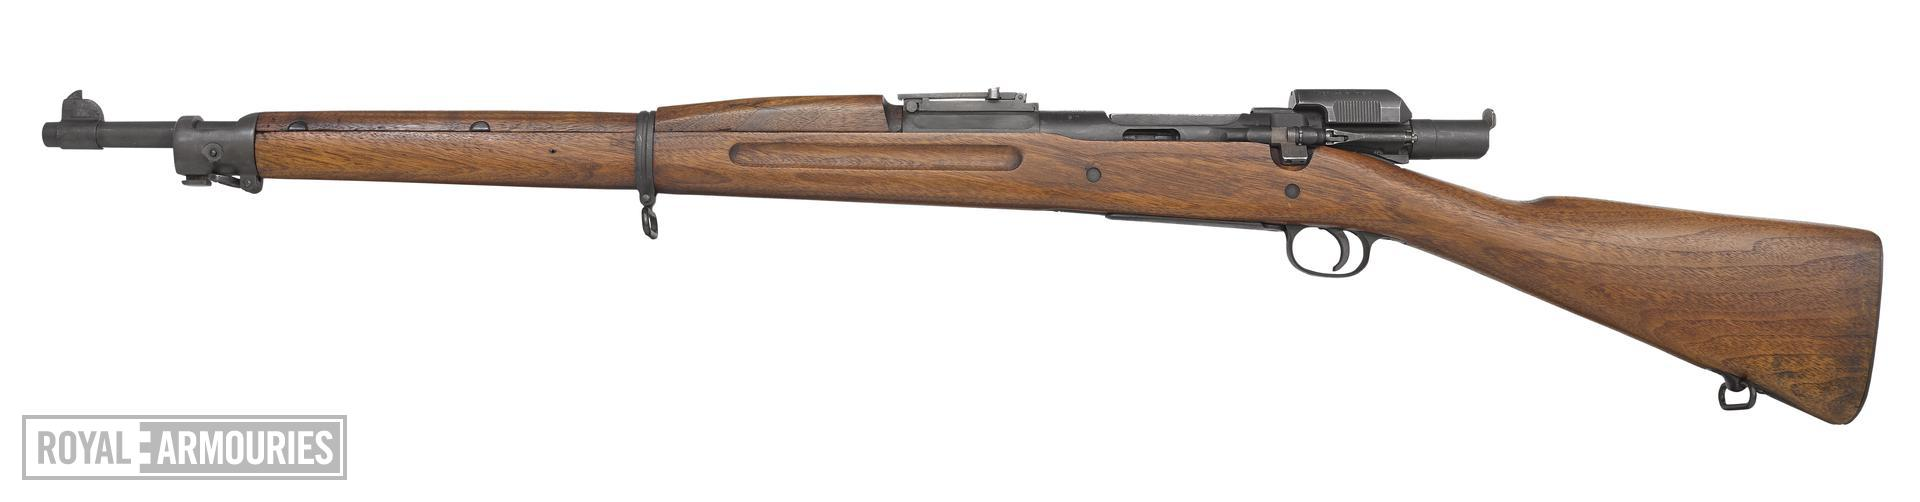 Springfield Model 1903 Mk.I centrefire bolt action rifle, United States, about 1903 (PR.7083), equipped with Pedersen Model 1918 Mk.I automatic device, United States, 1918 (PR.2495).